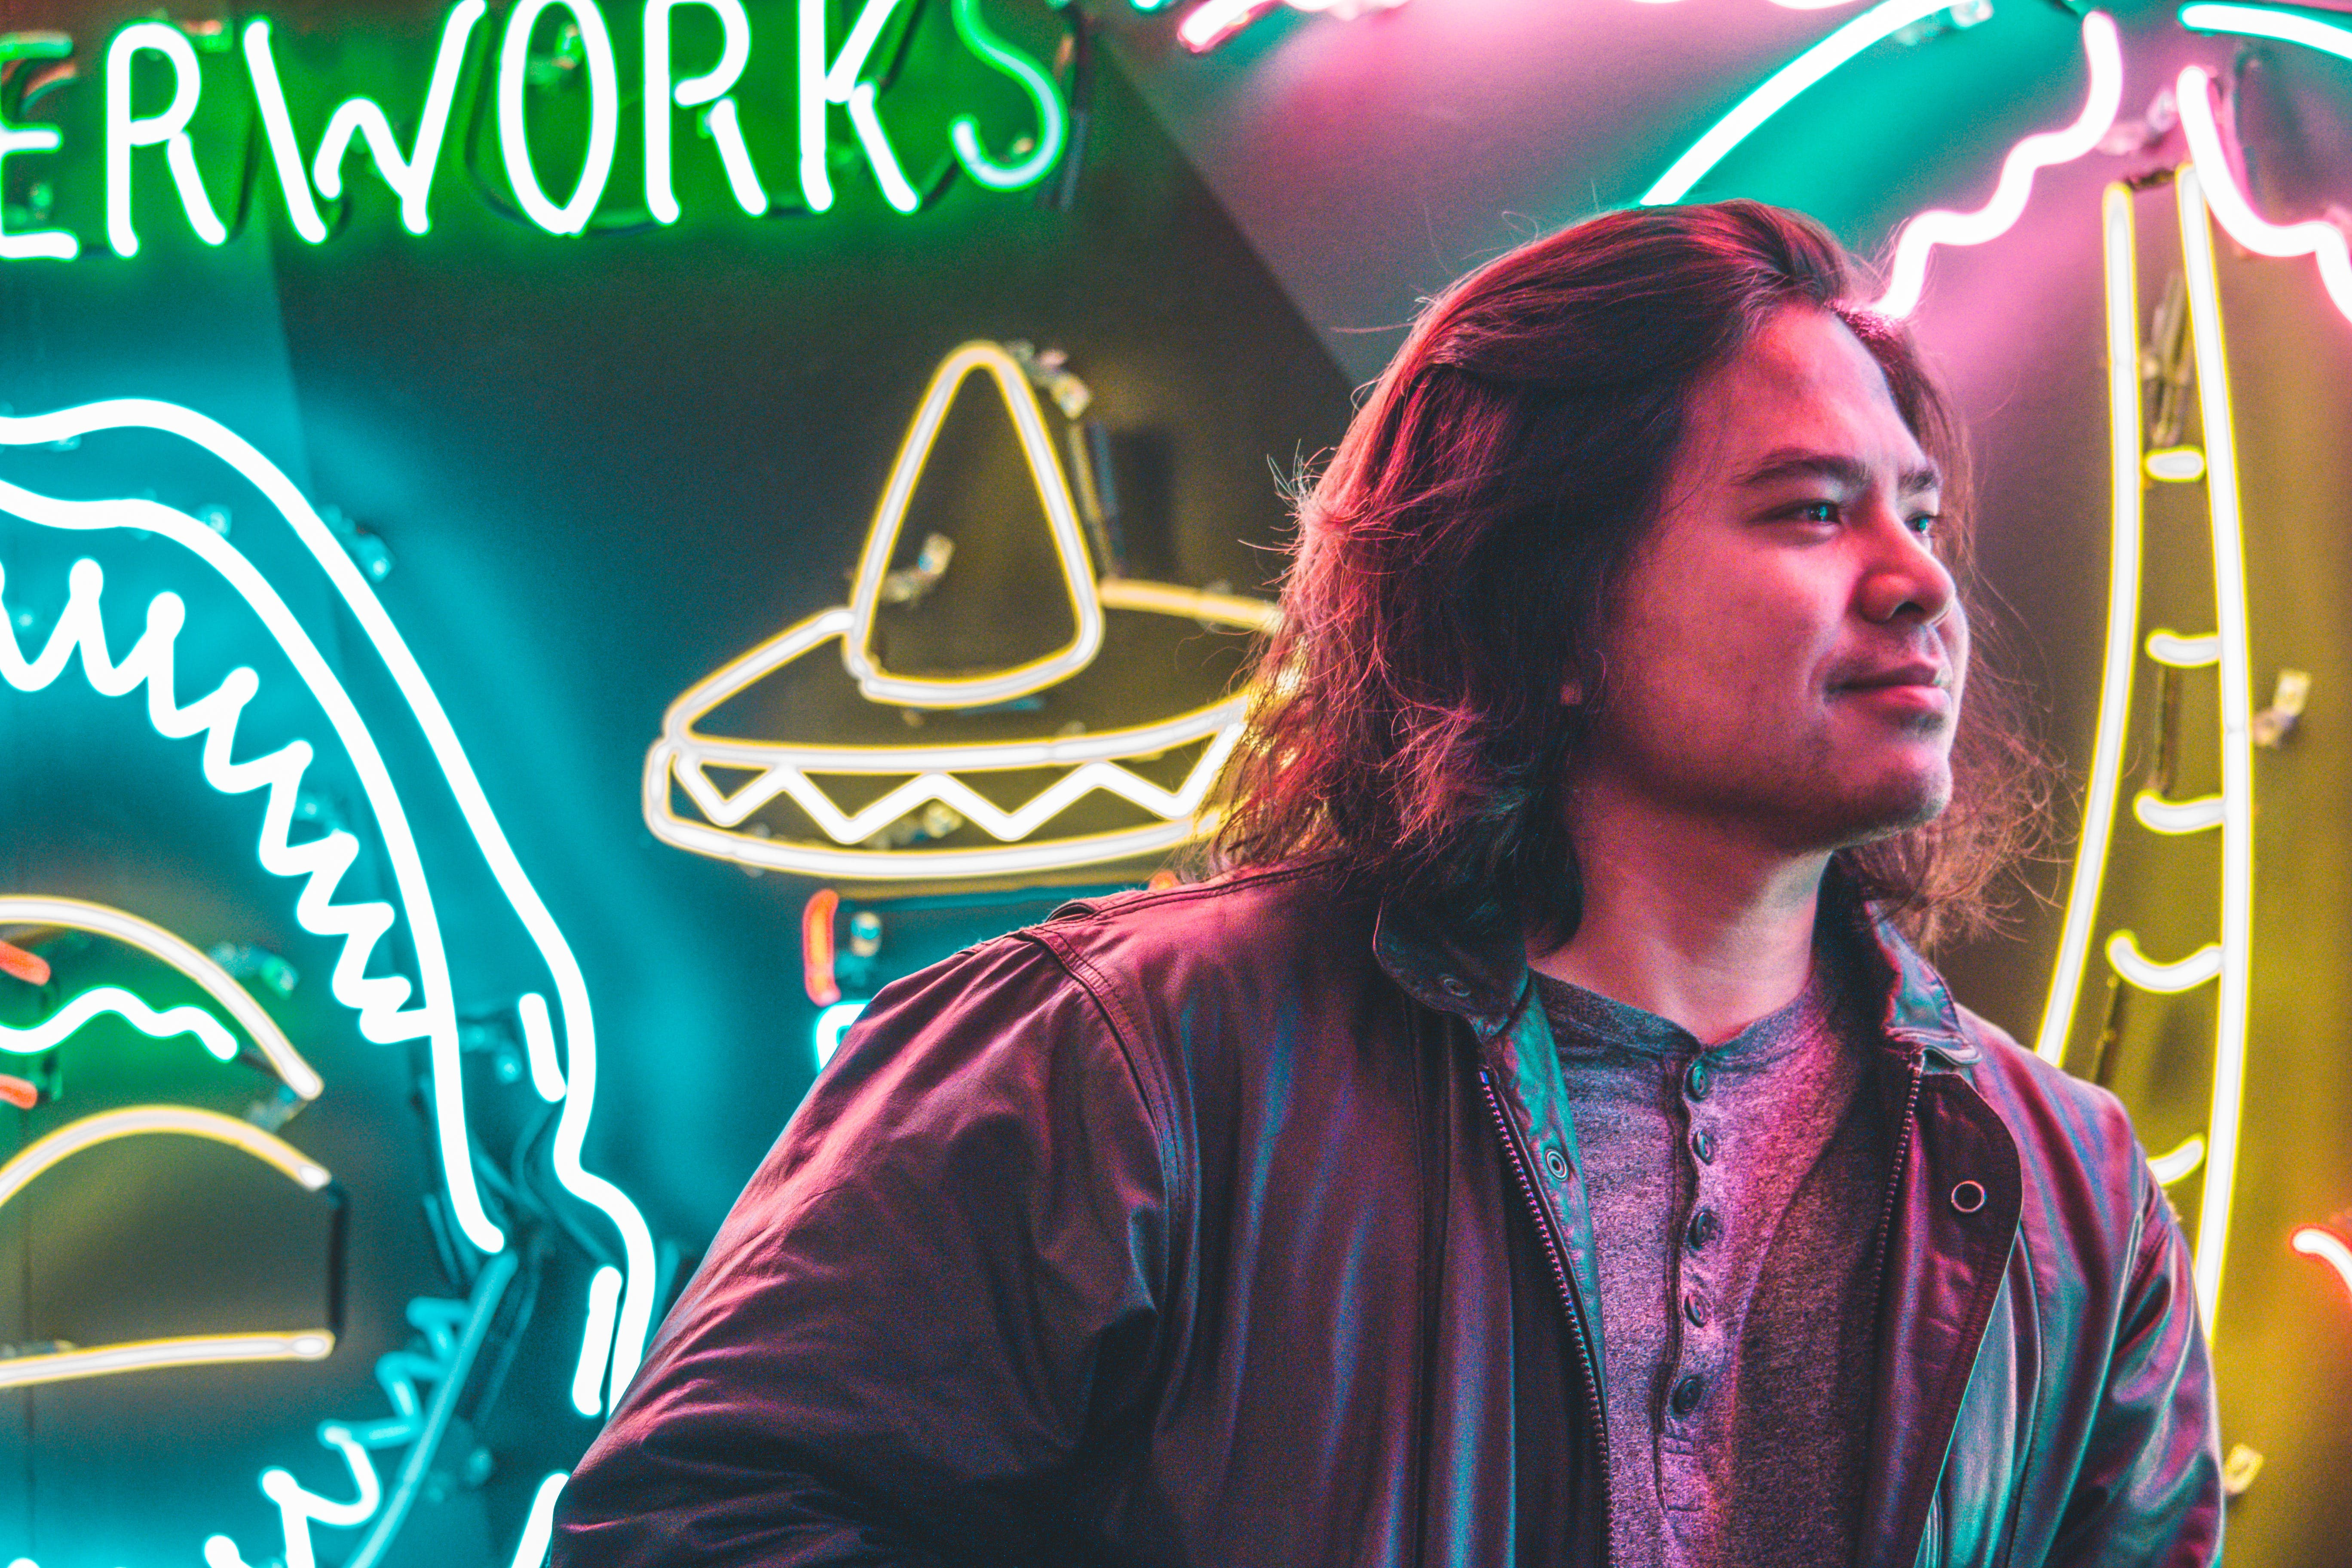 Man Standing in Front of Neon Signages